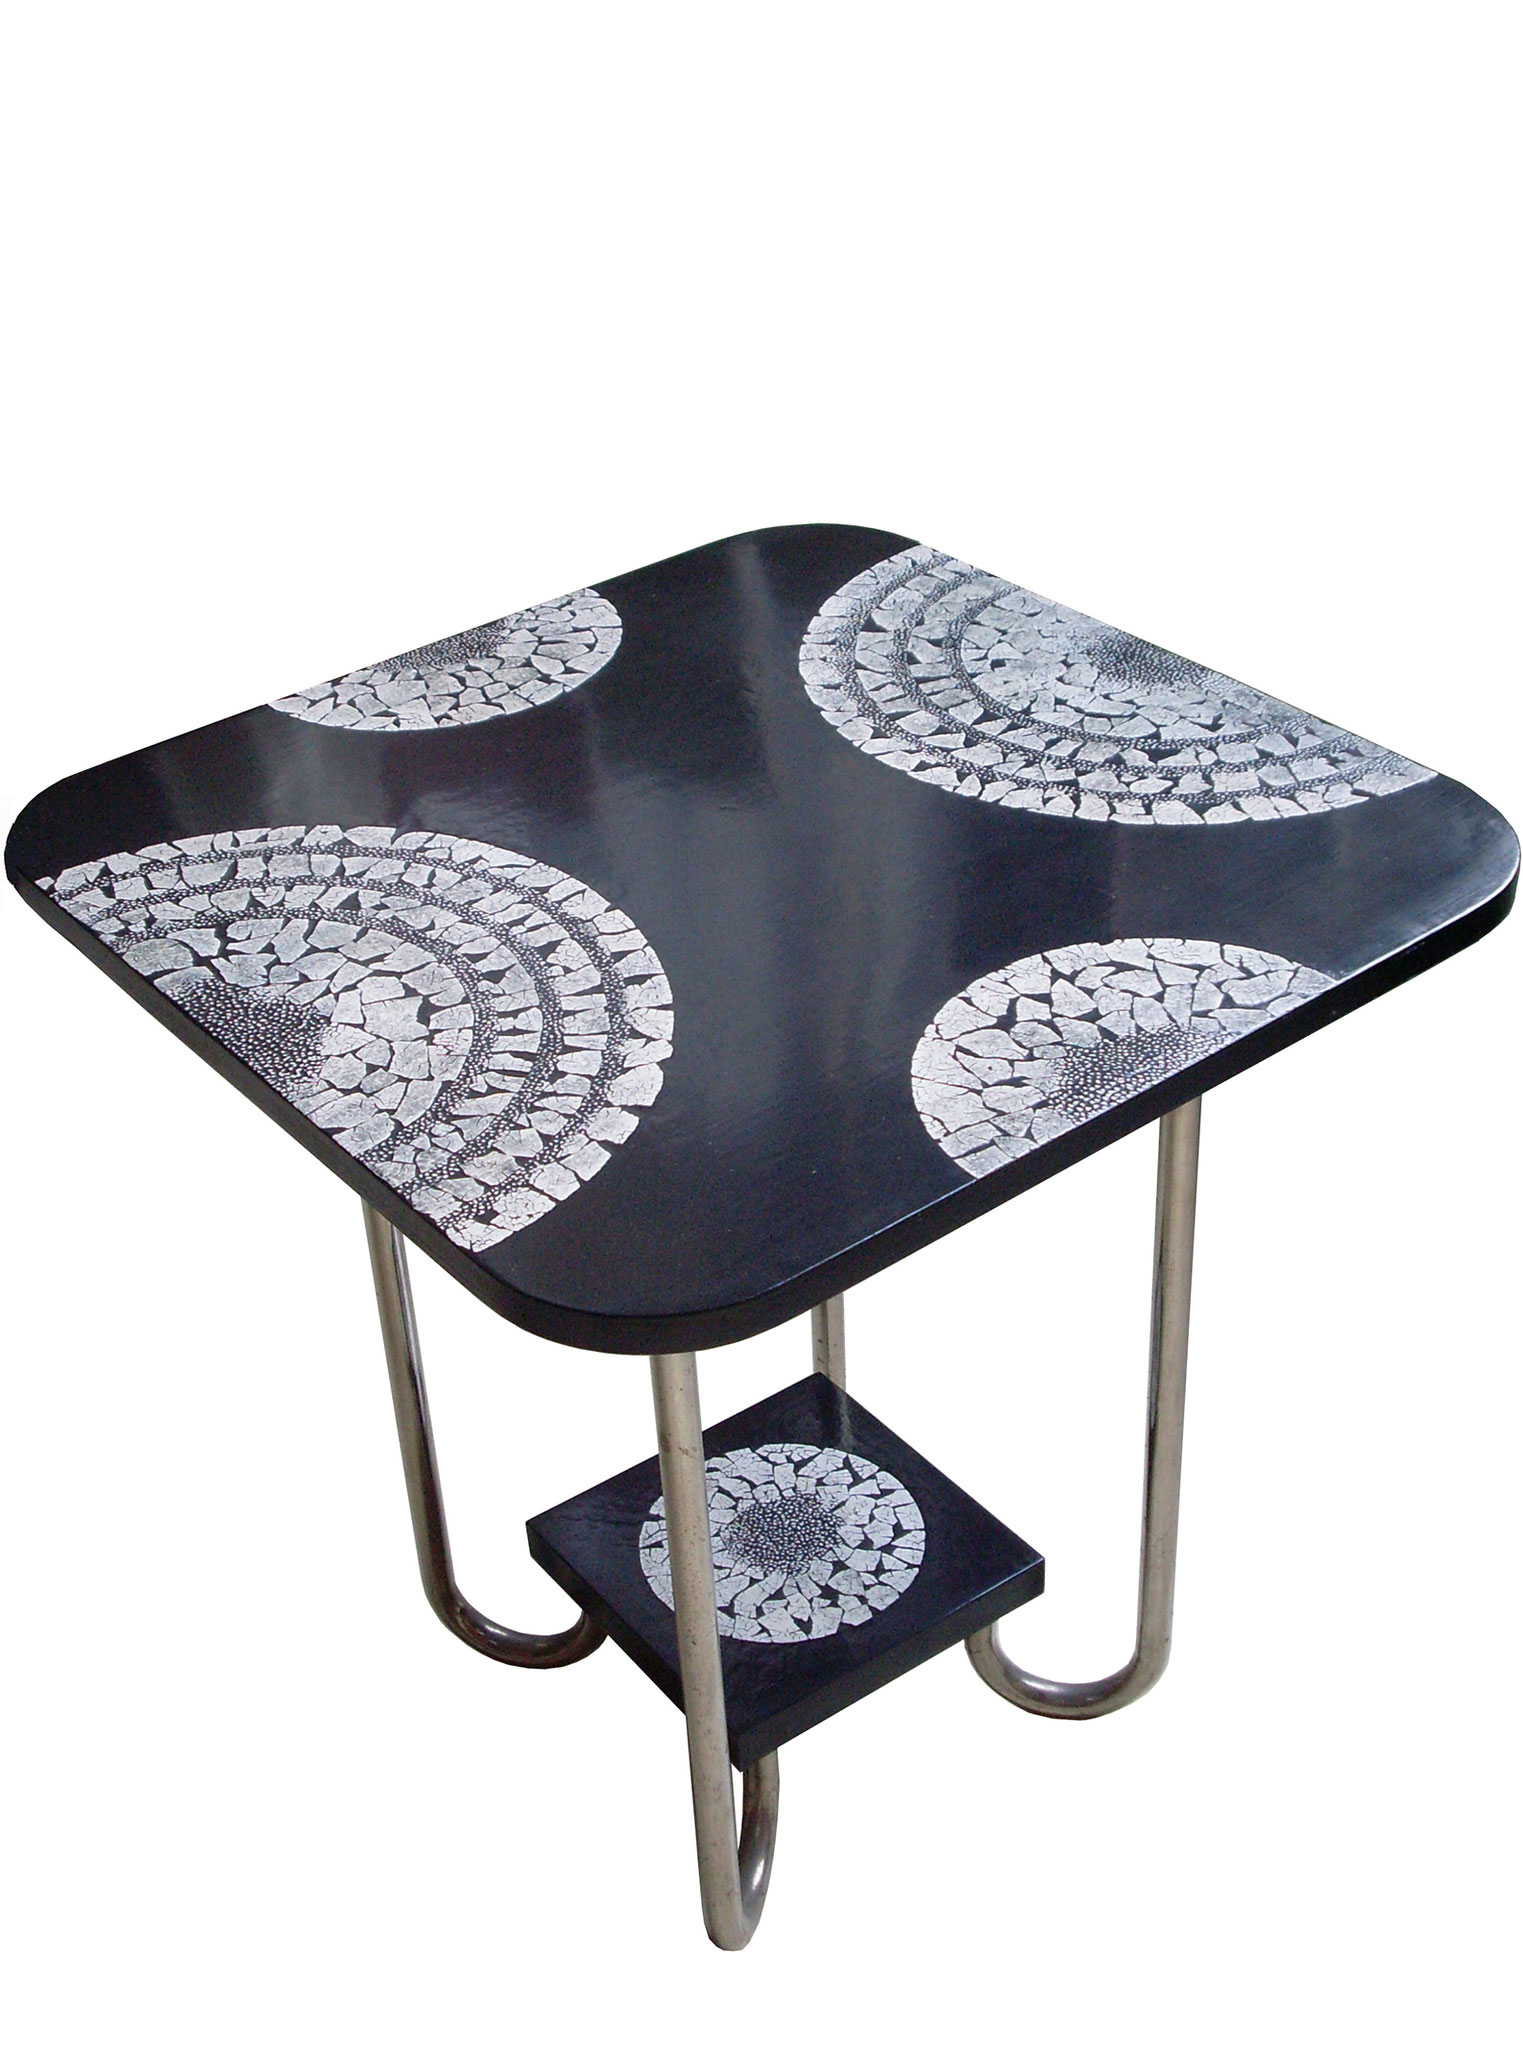 Low table lacquered with eggshell inlays - Vintage piece from the 1940's - 36 x 41 cm